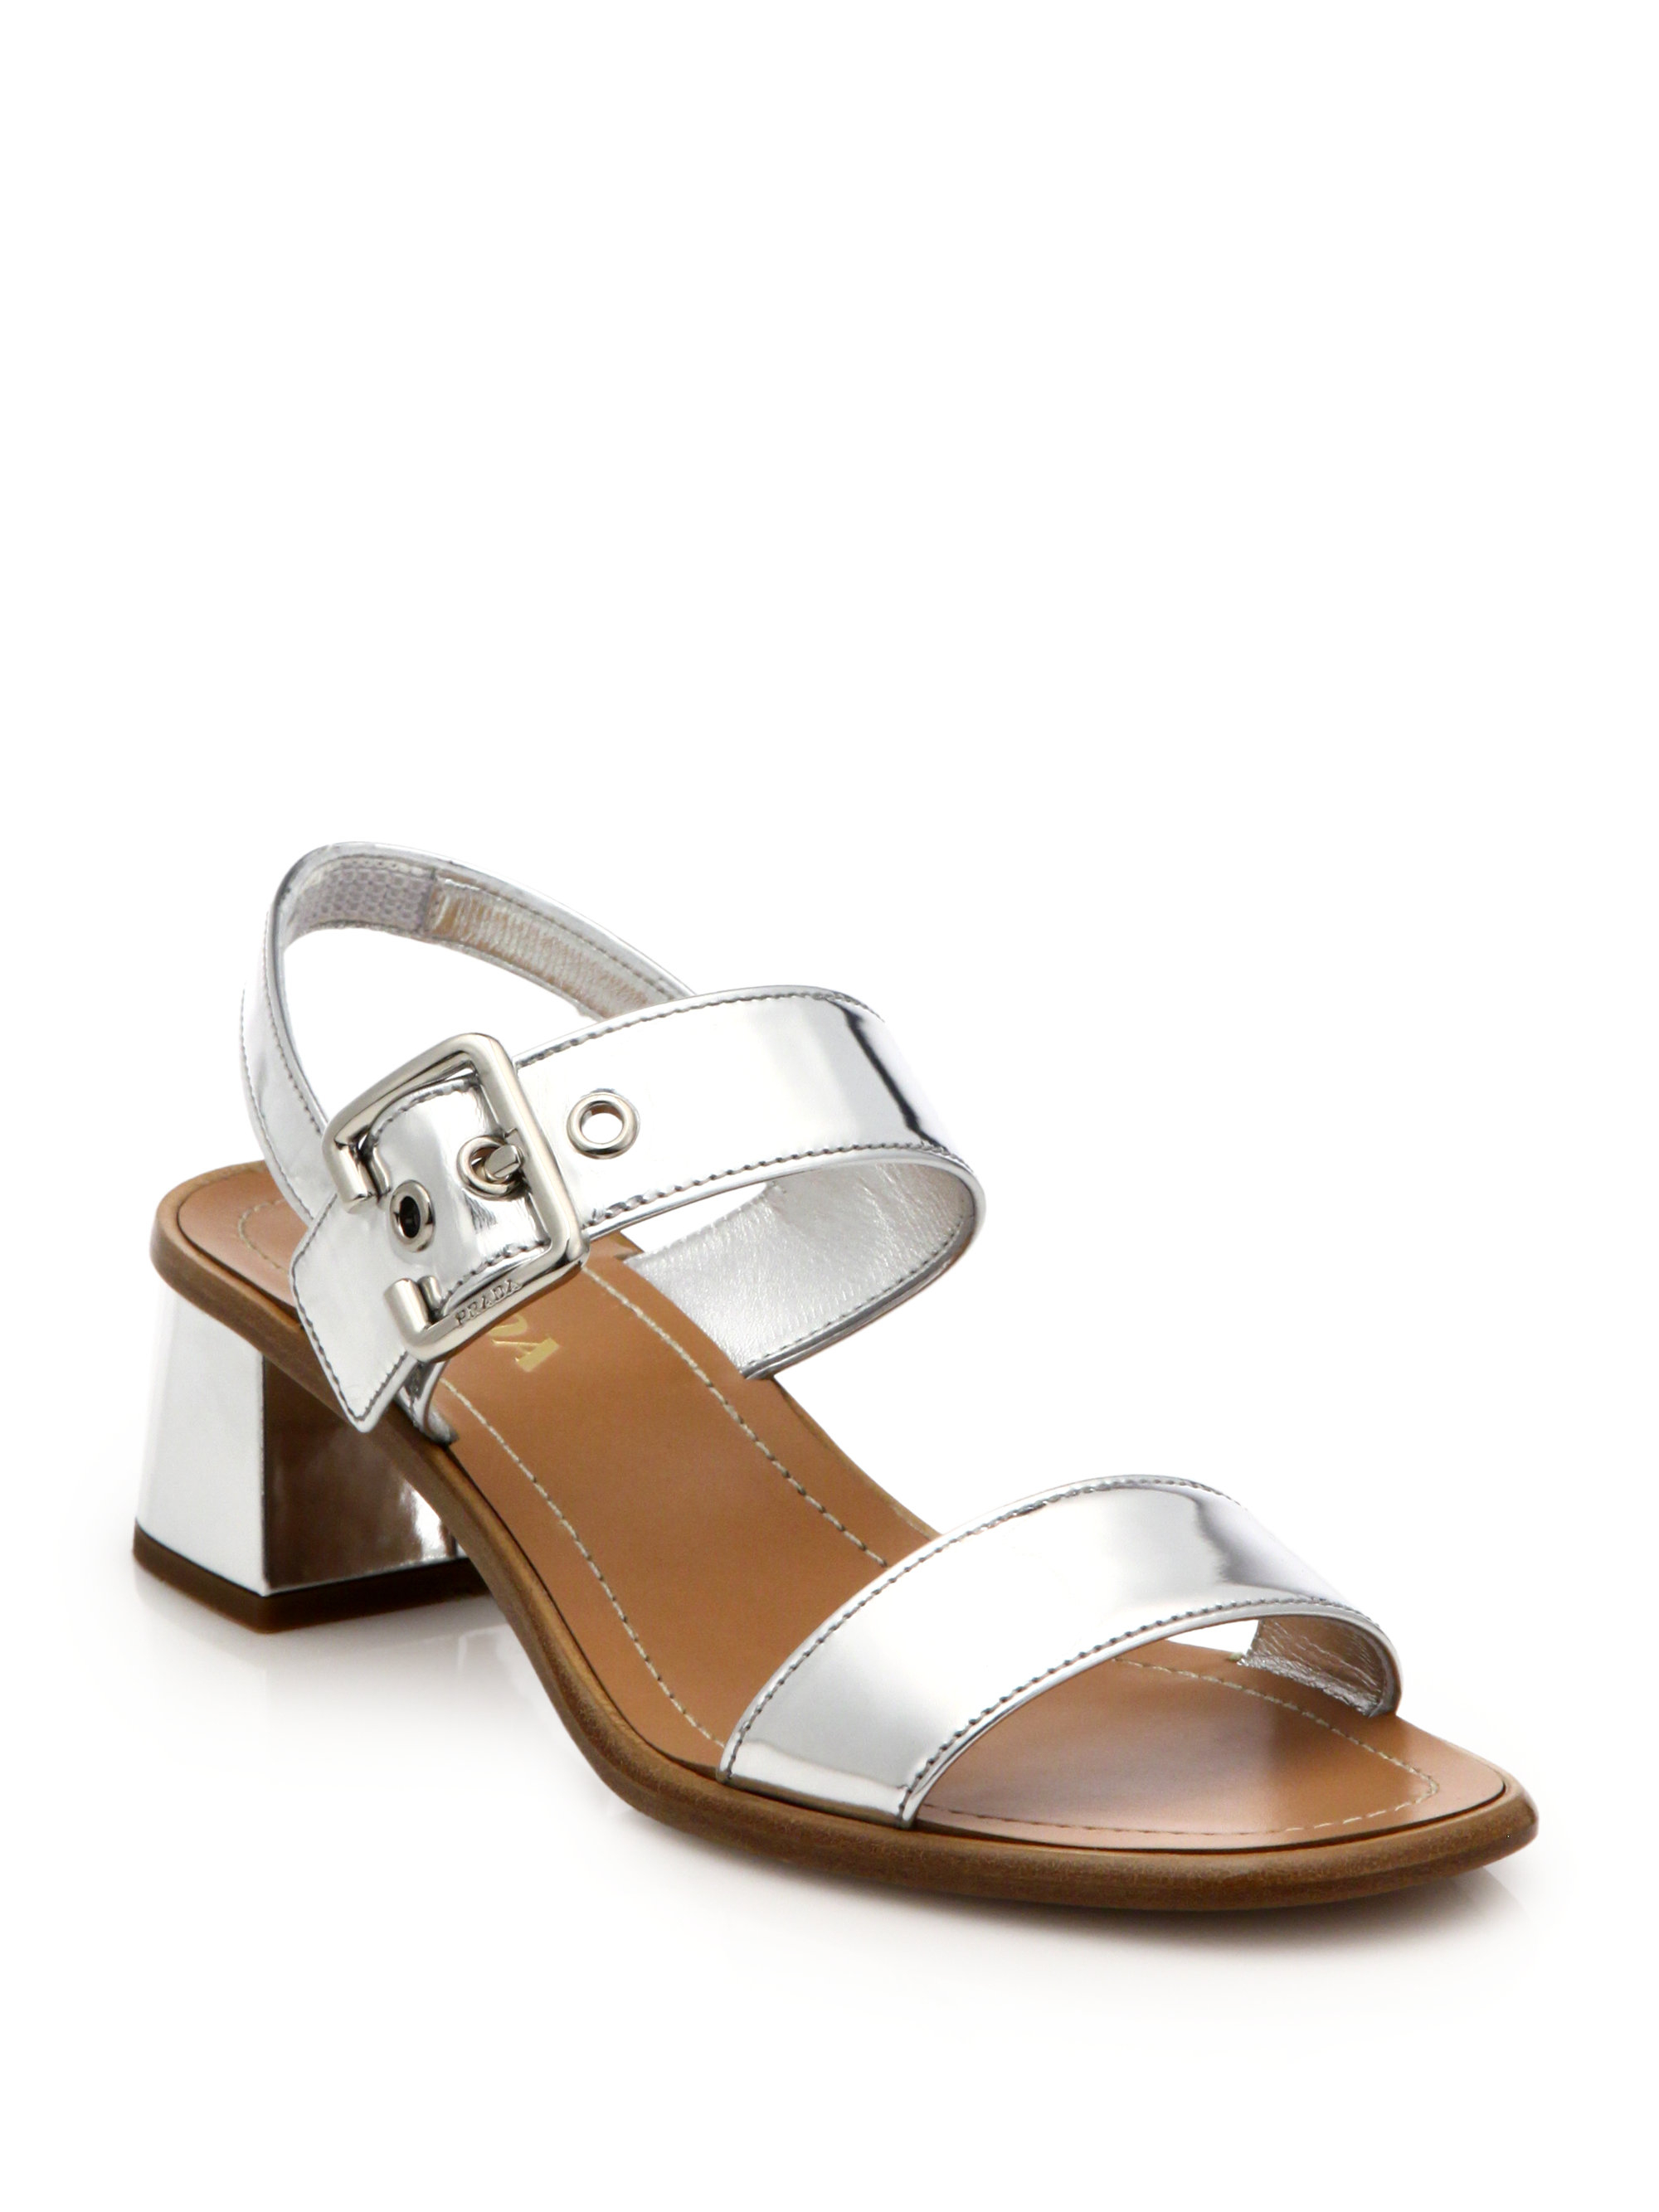 Prada 80MM METALLIC LEATHER SANDALS Discount The Cheapest Cheapest Browse Online HUIHYC